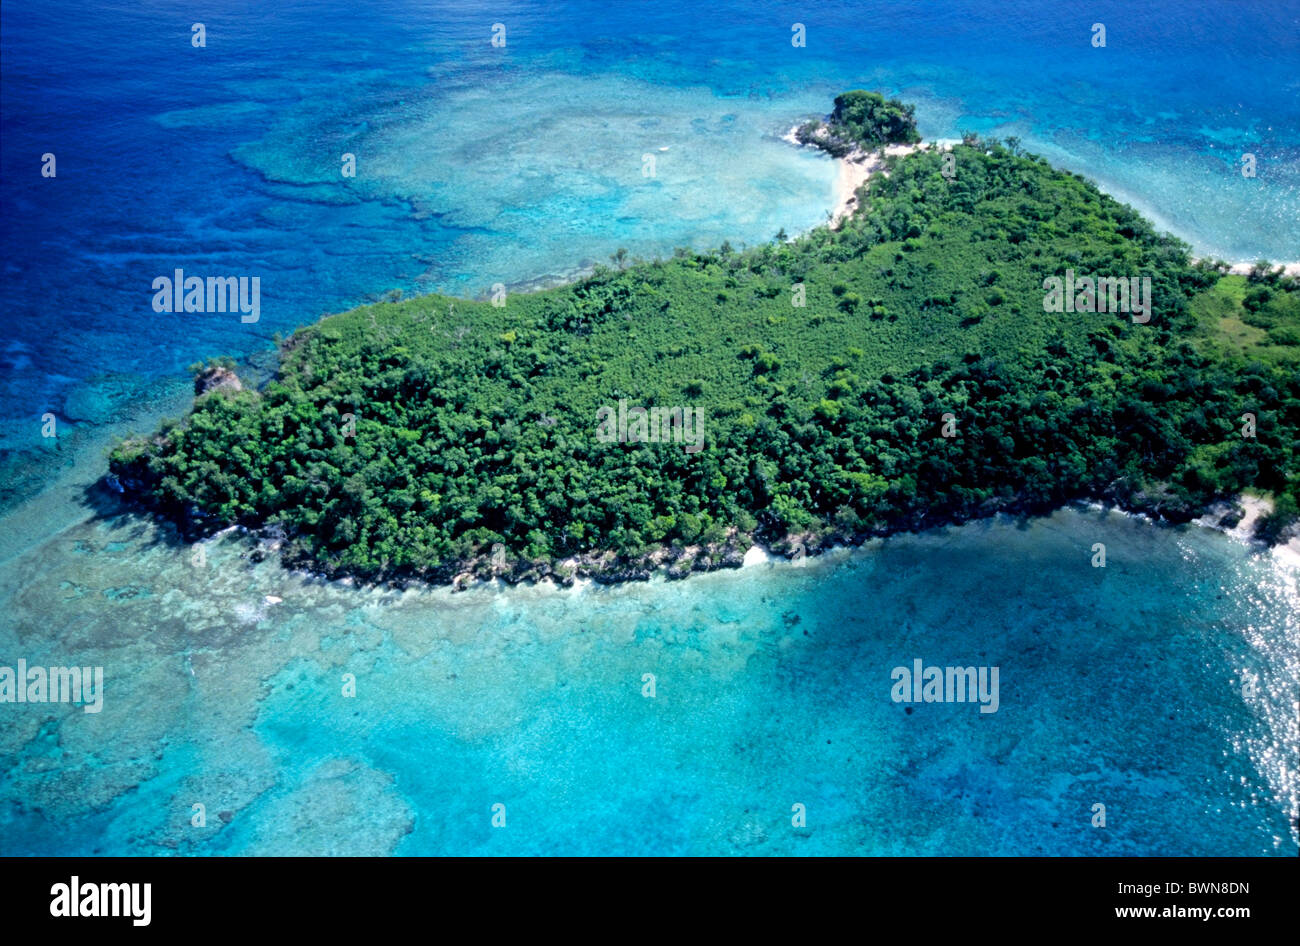 Mosso Island, Vanuatu, South Pacific Ocean. - Stock Image